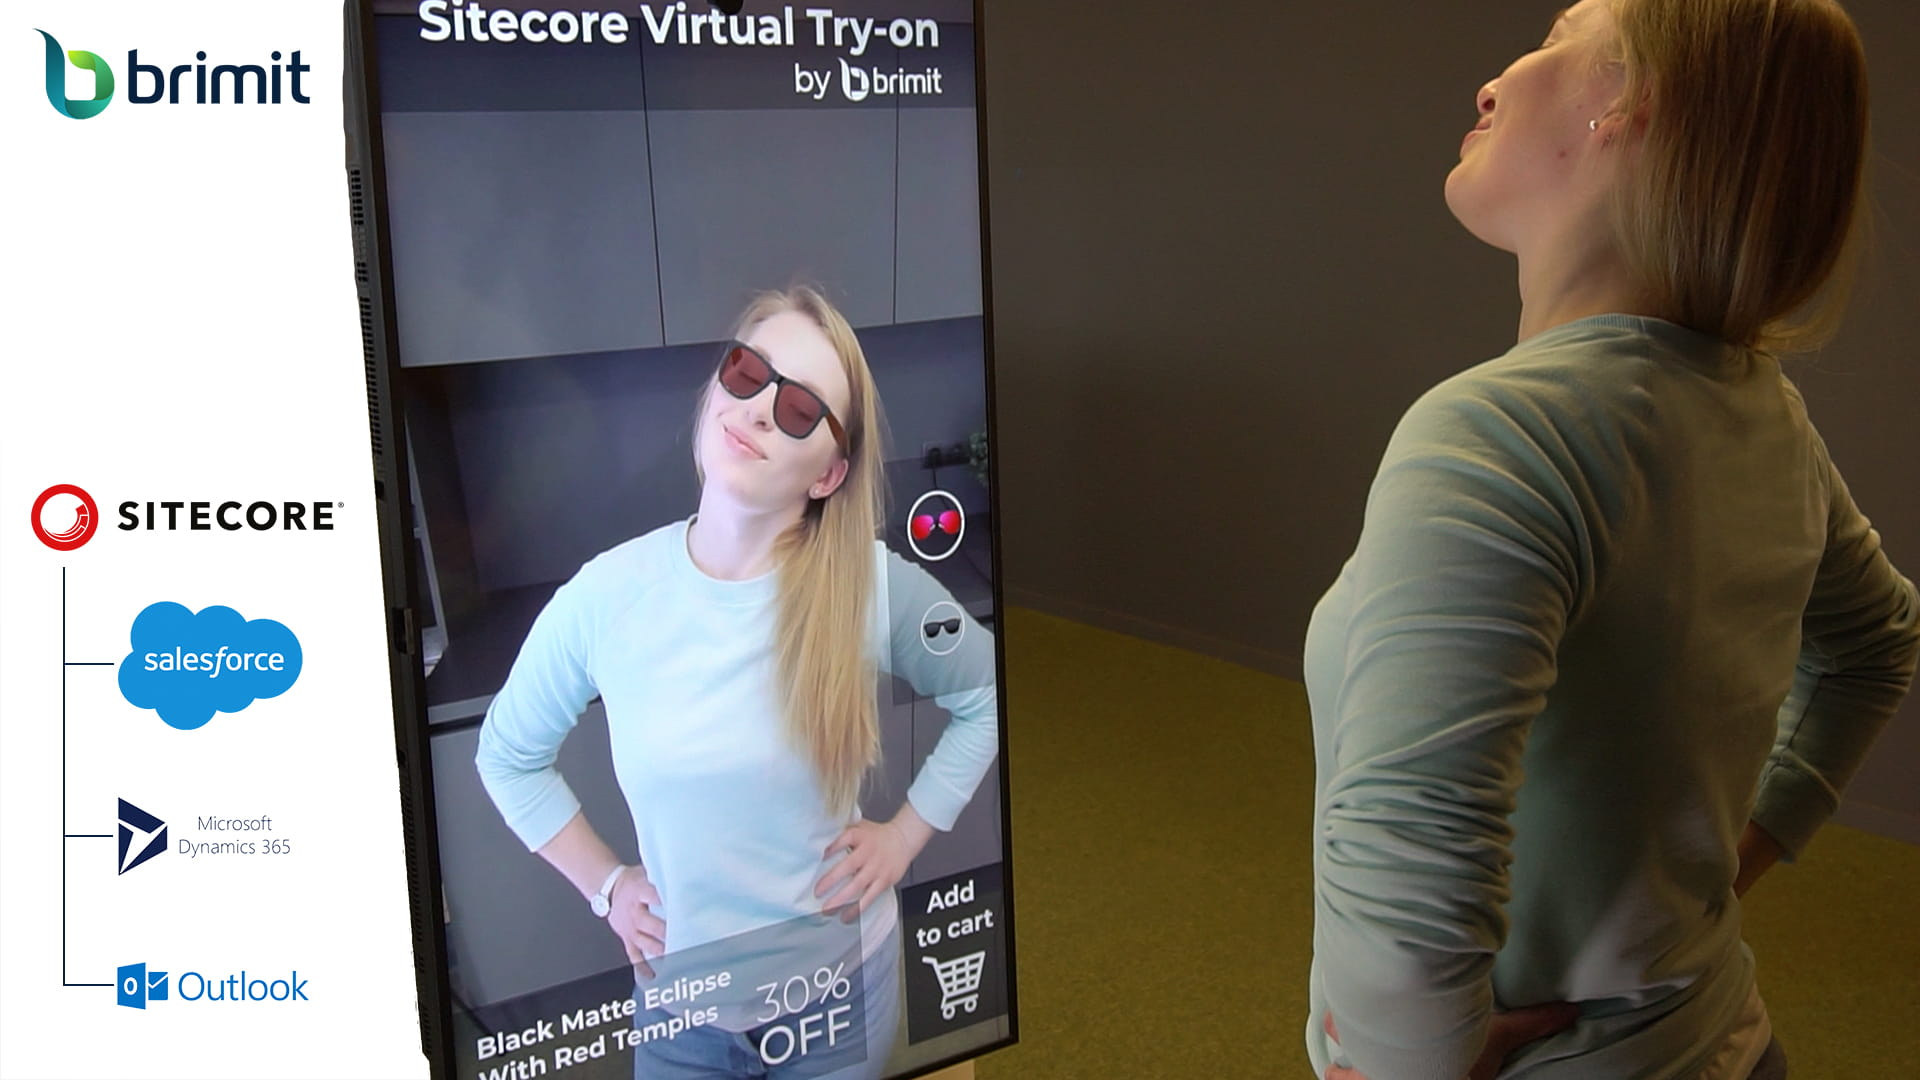 Sitecore and augmented reality: connecting the offline and online customer experience with a virtual try-on